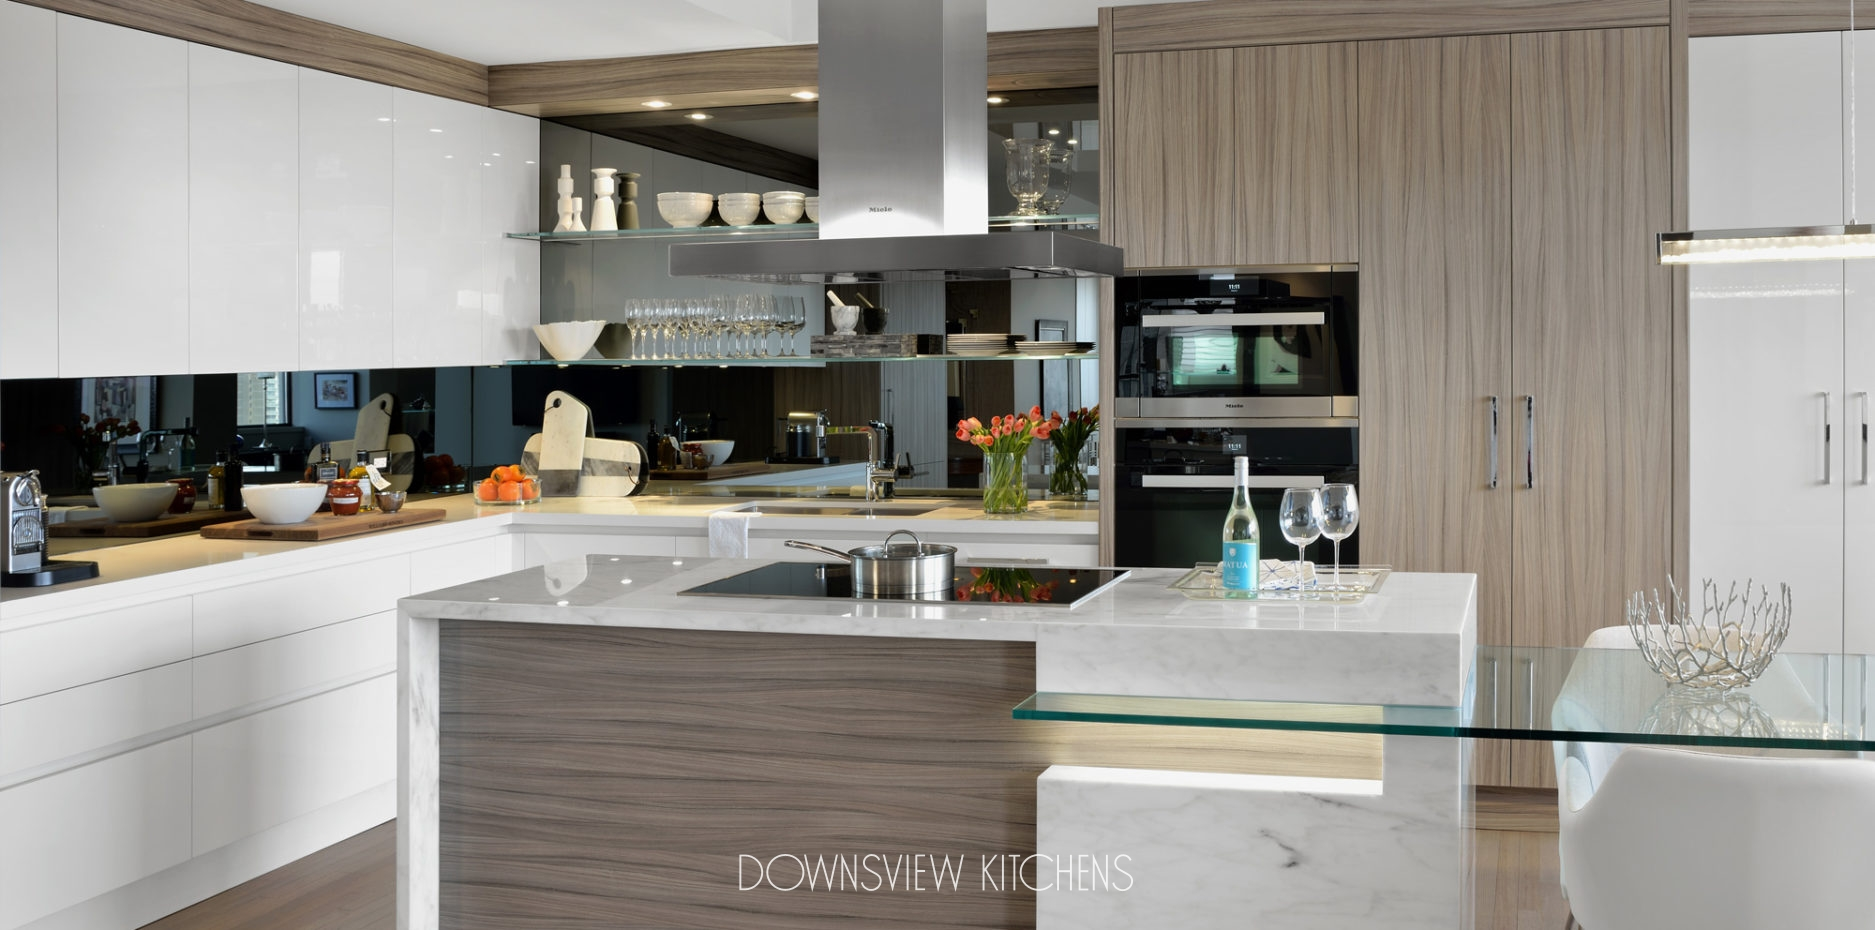 Uptown Posh Downsview Kitchens And Fine Custom Cabinetry